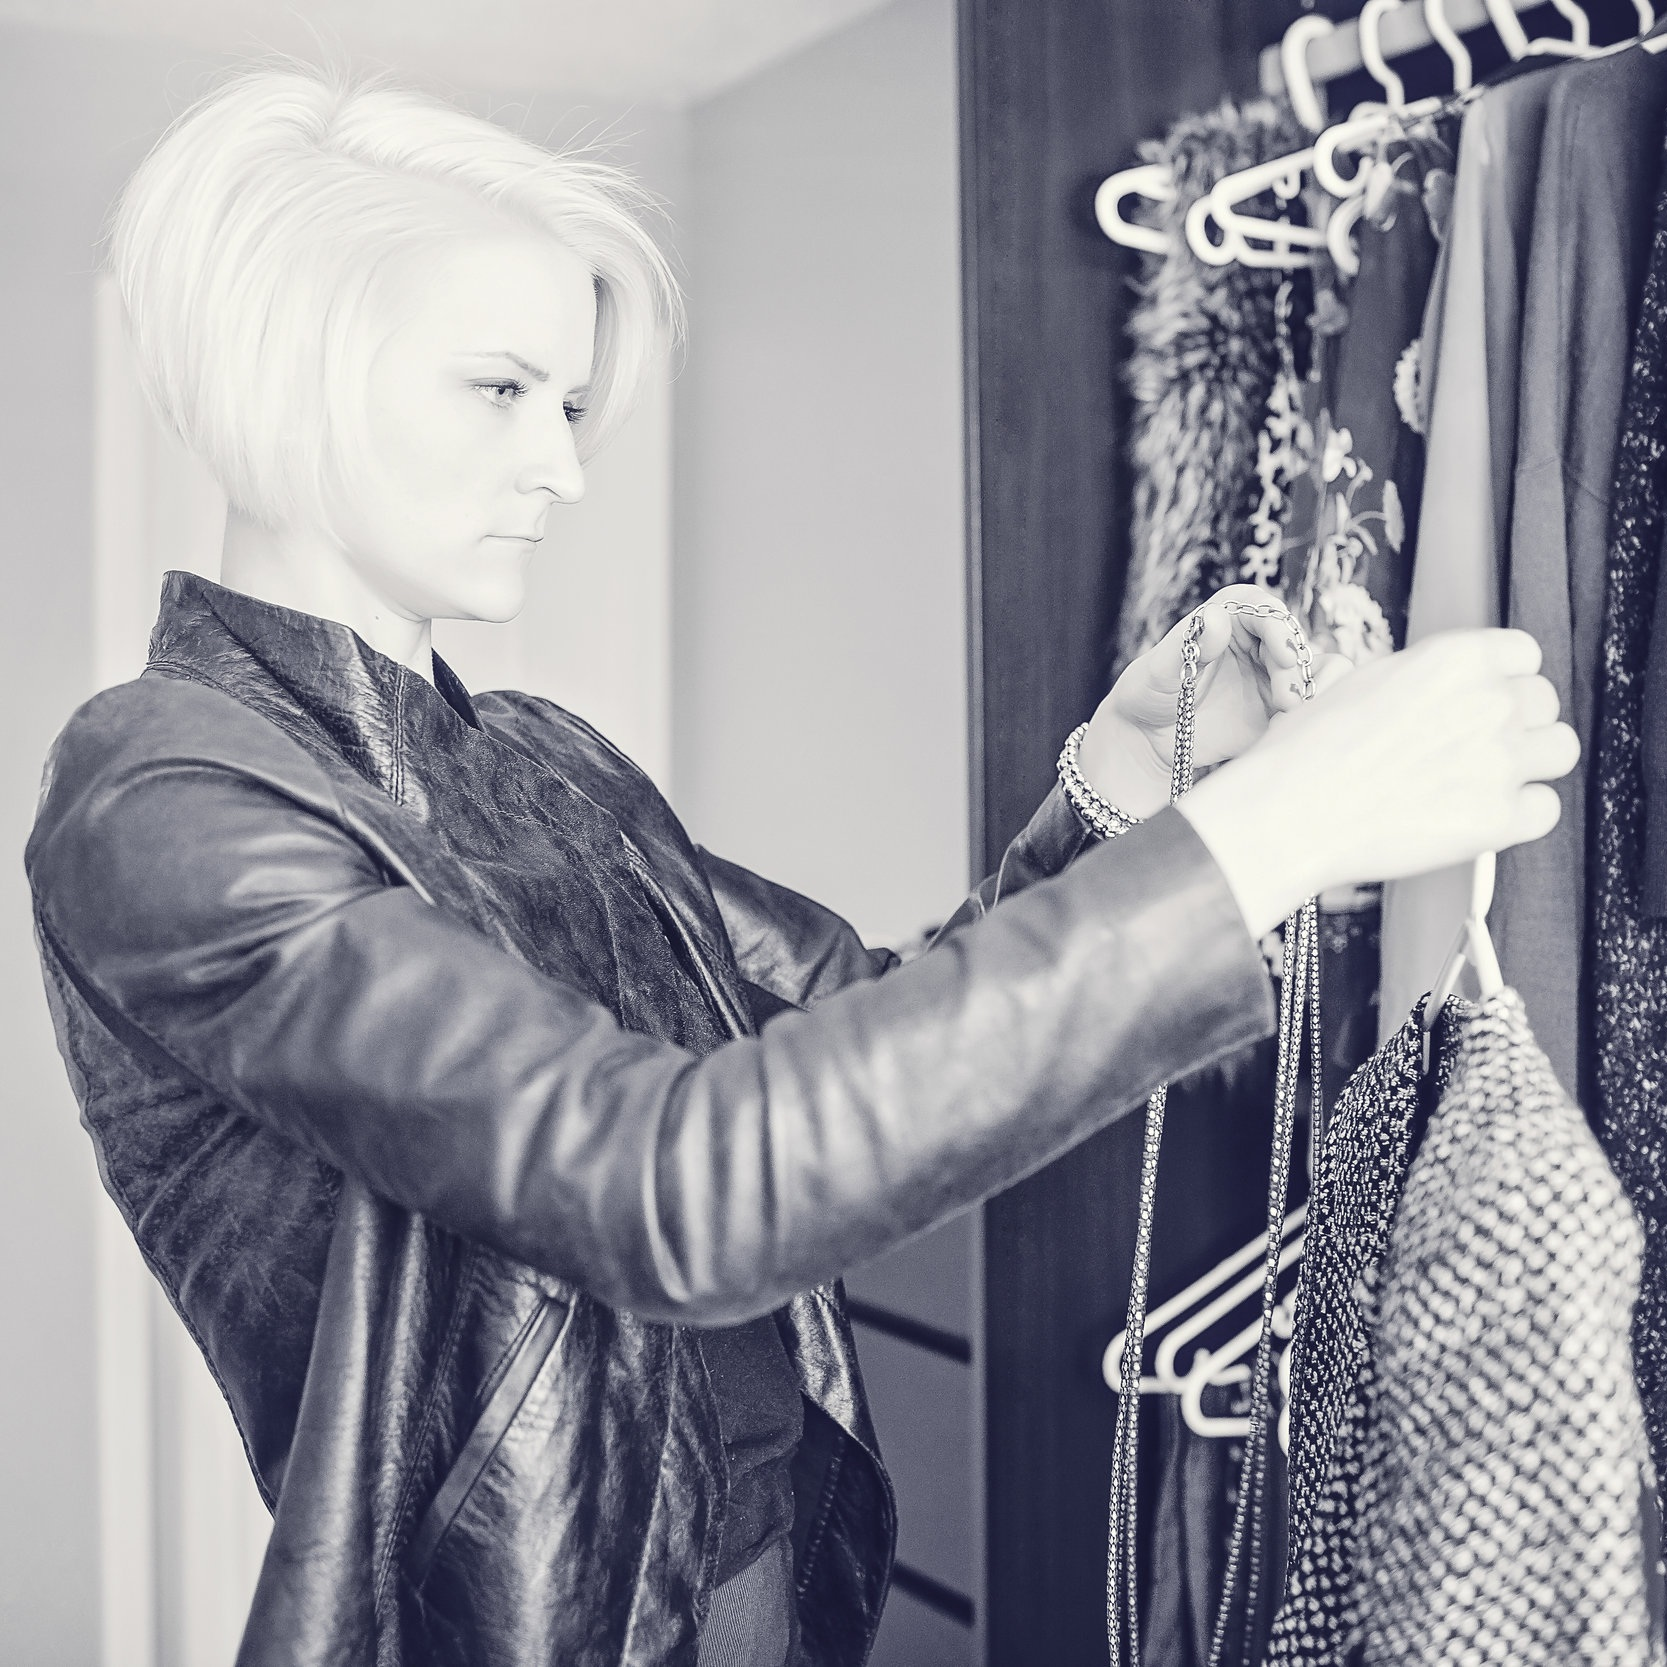 Capsule Wardrobe Style Enhancement - Get more consistent, enhanced style with less items.